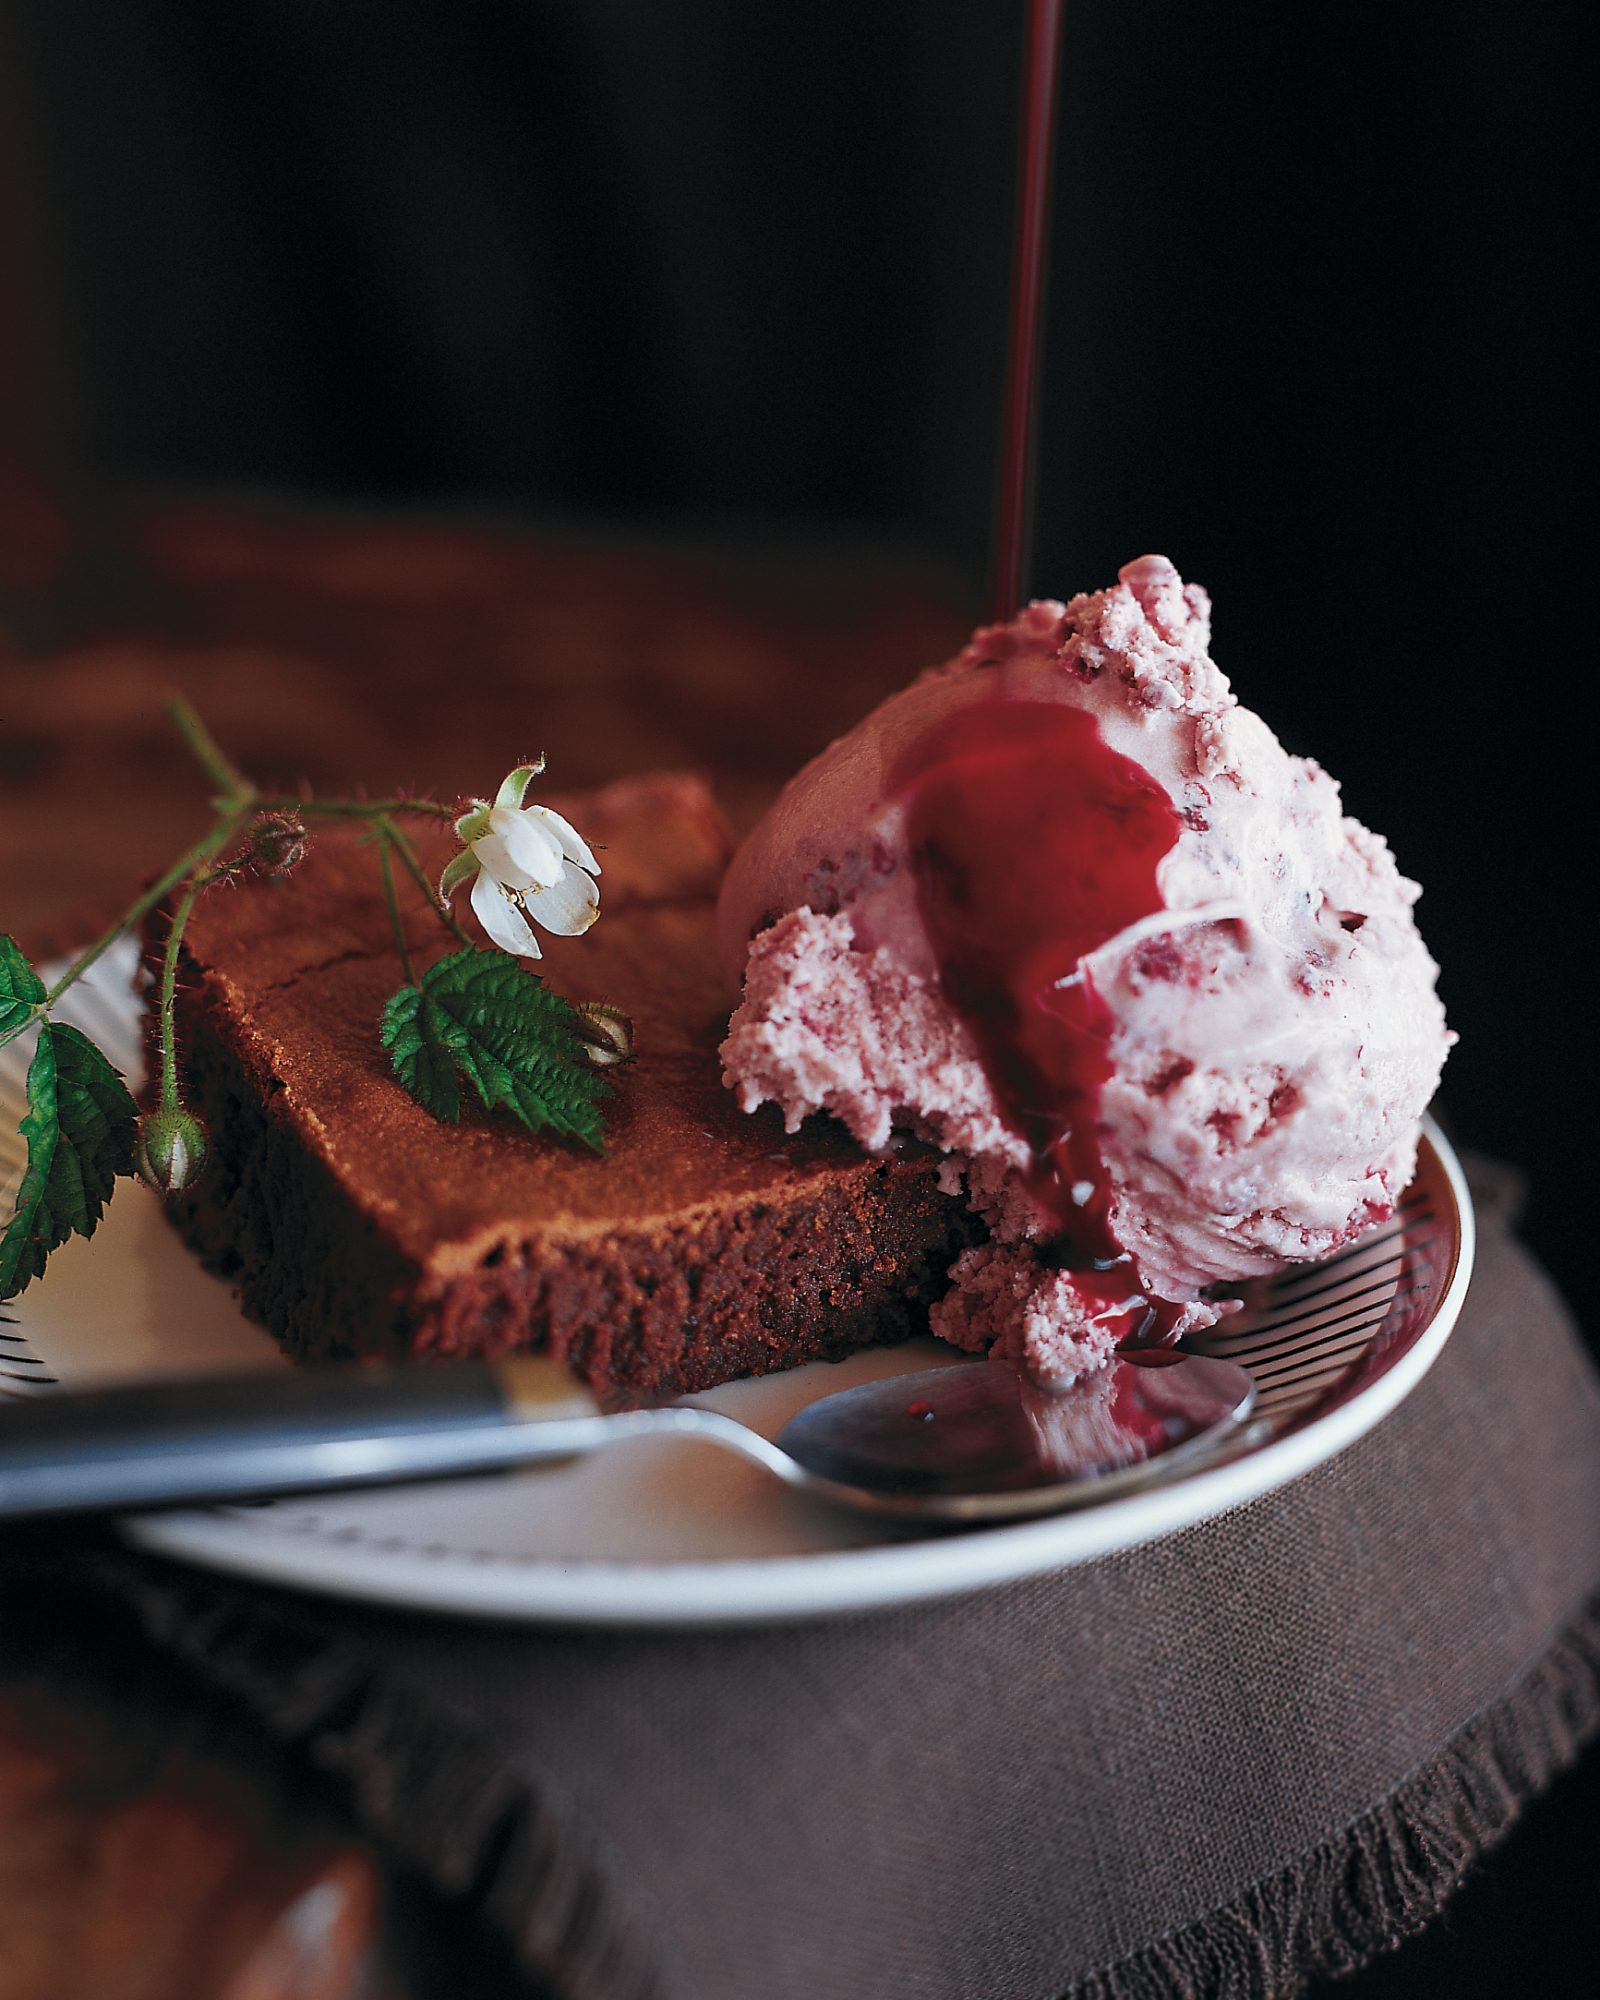 Blackberry Ice Cream with brownie